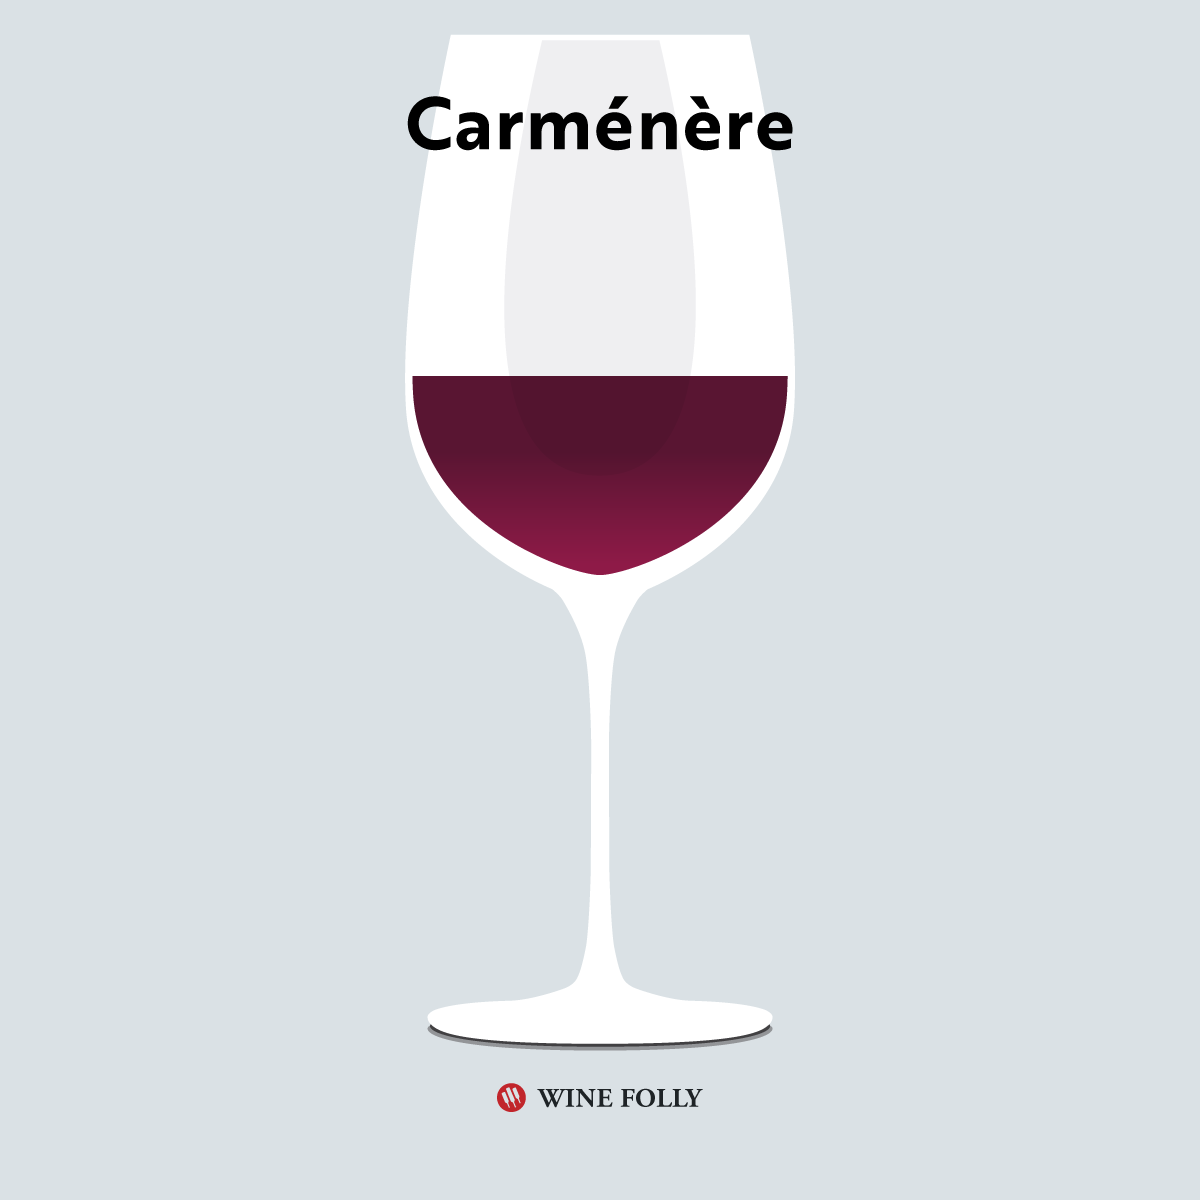 Carmenere in a glass - illustration by Wine Folly